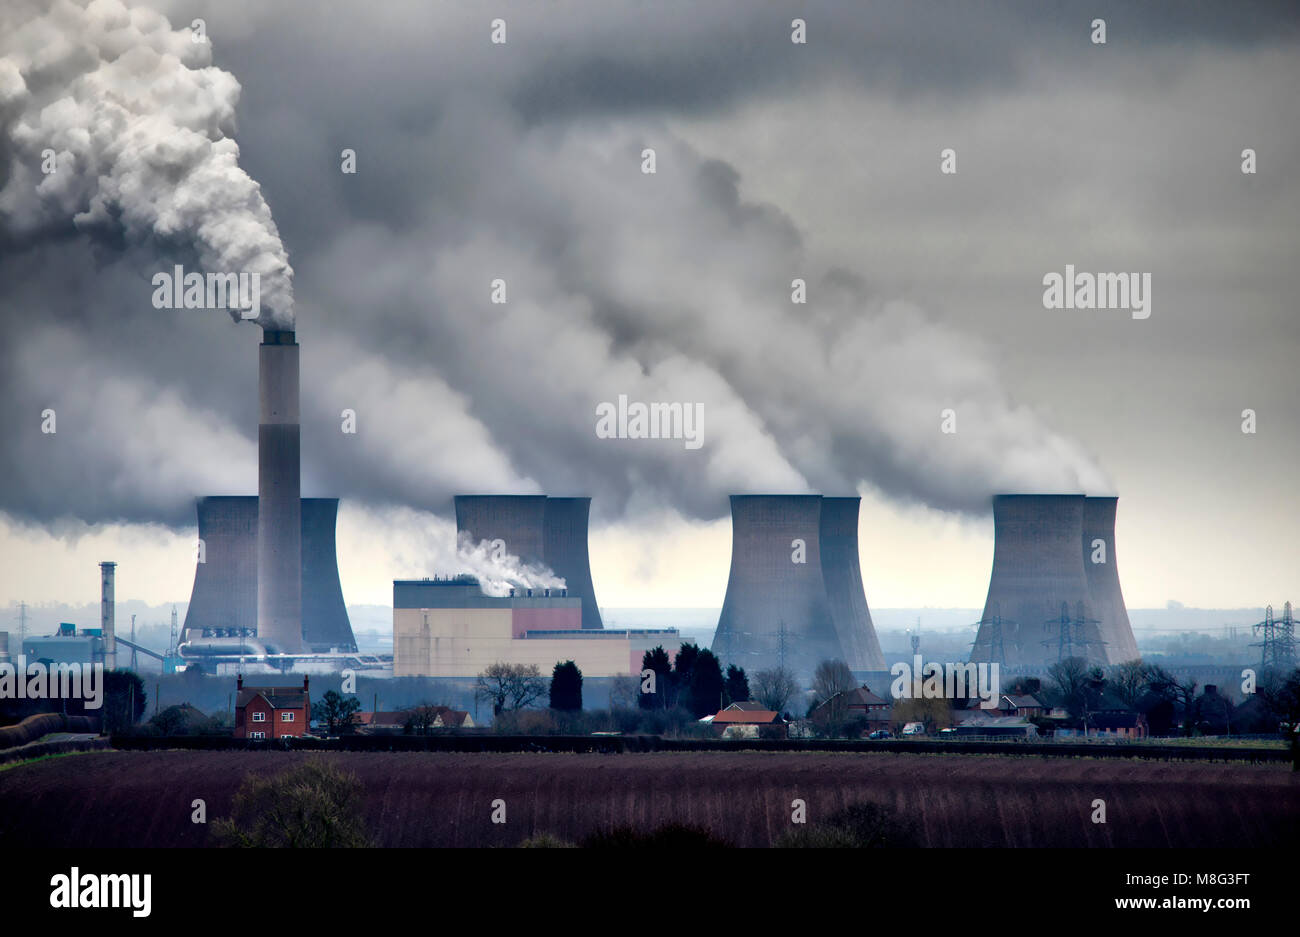 In the Shadow of Cottam Power Station, Nottinghamshire, England - Stock Image